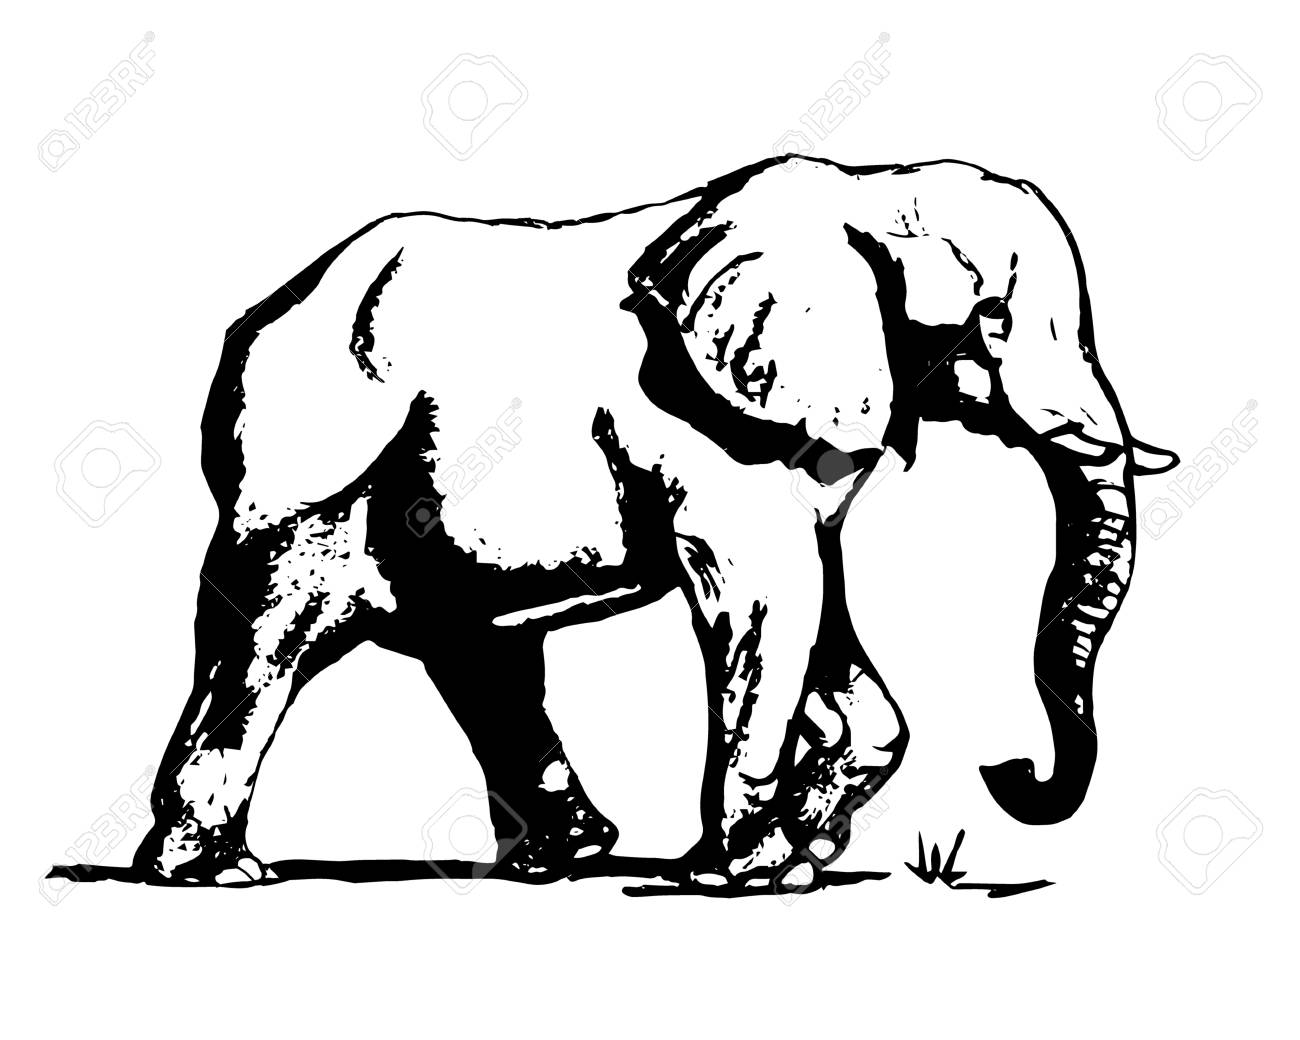 1300x1040 Graphic Image Of An Elephant On A White Background. The Freehand